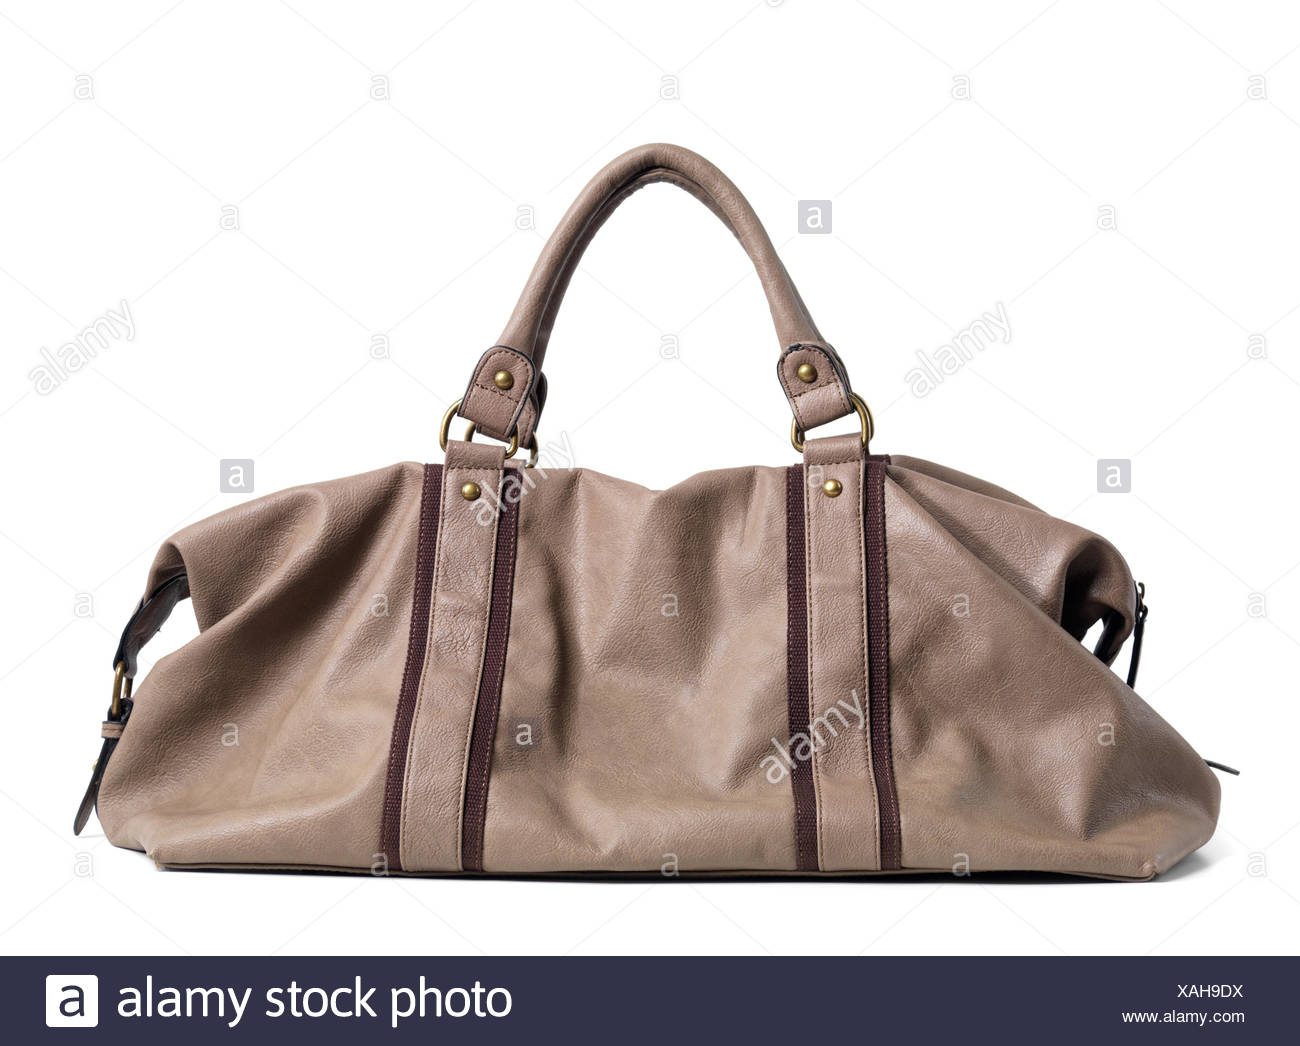 Beige Bag Stock Photos Amp Beige Bag Stock Images Alamy